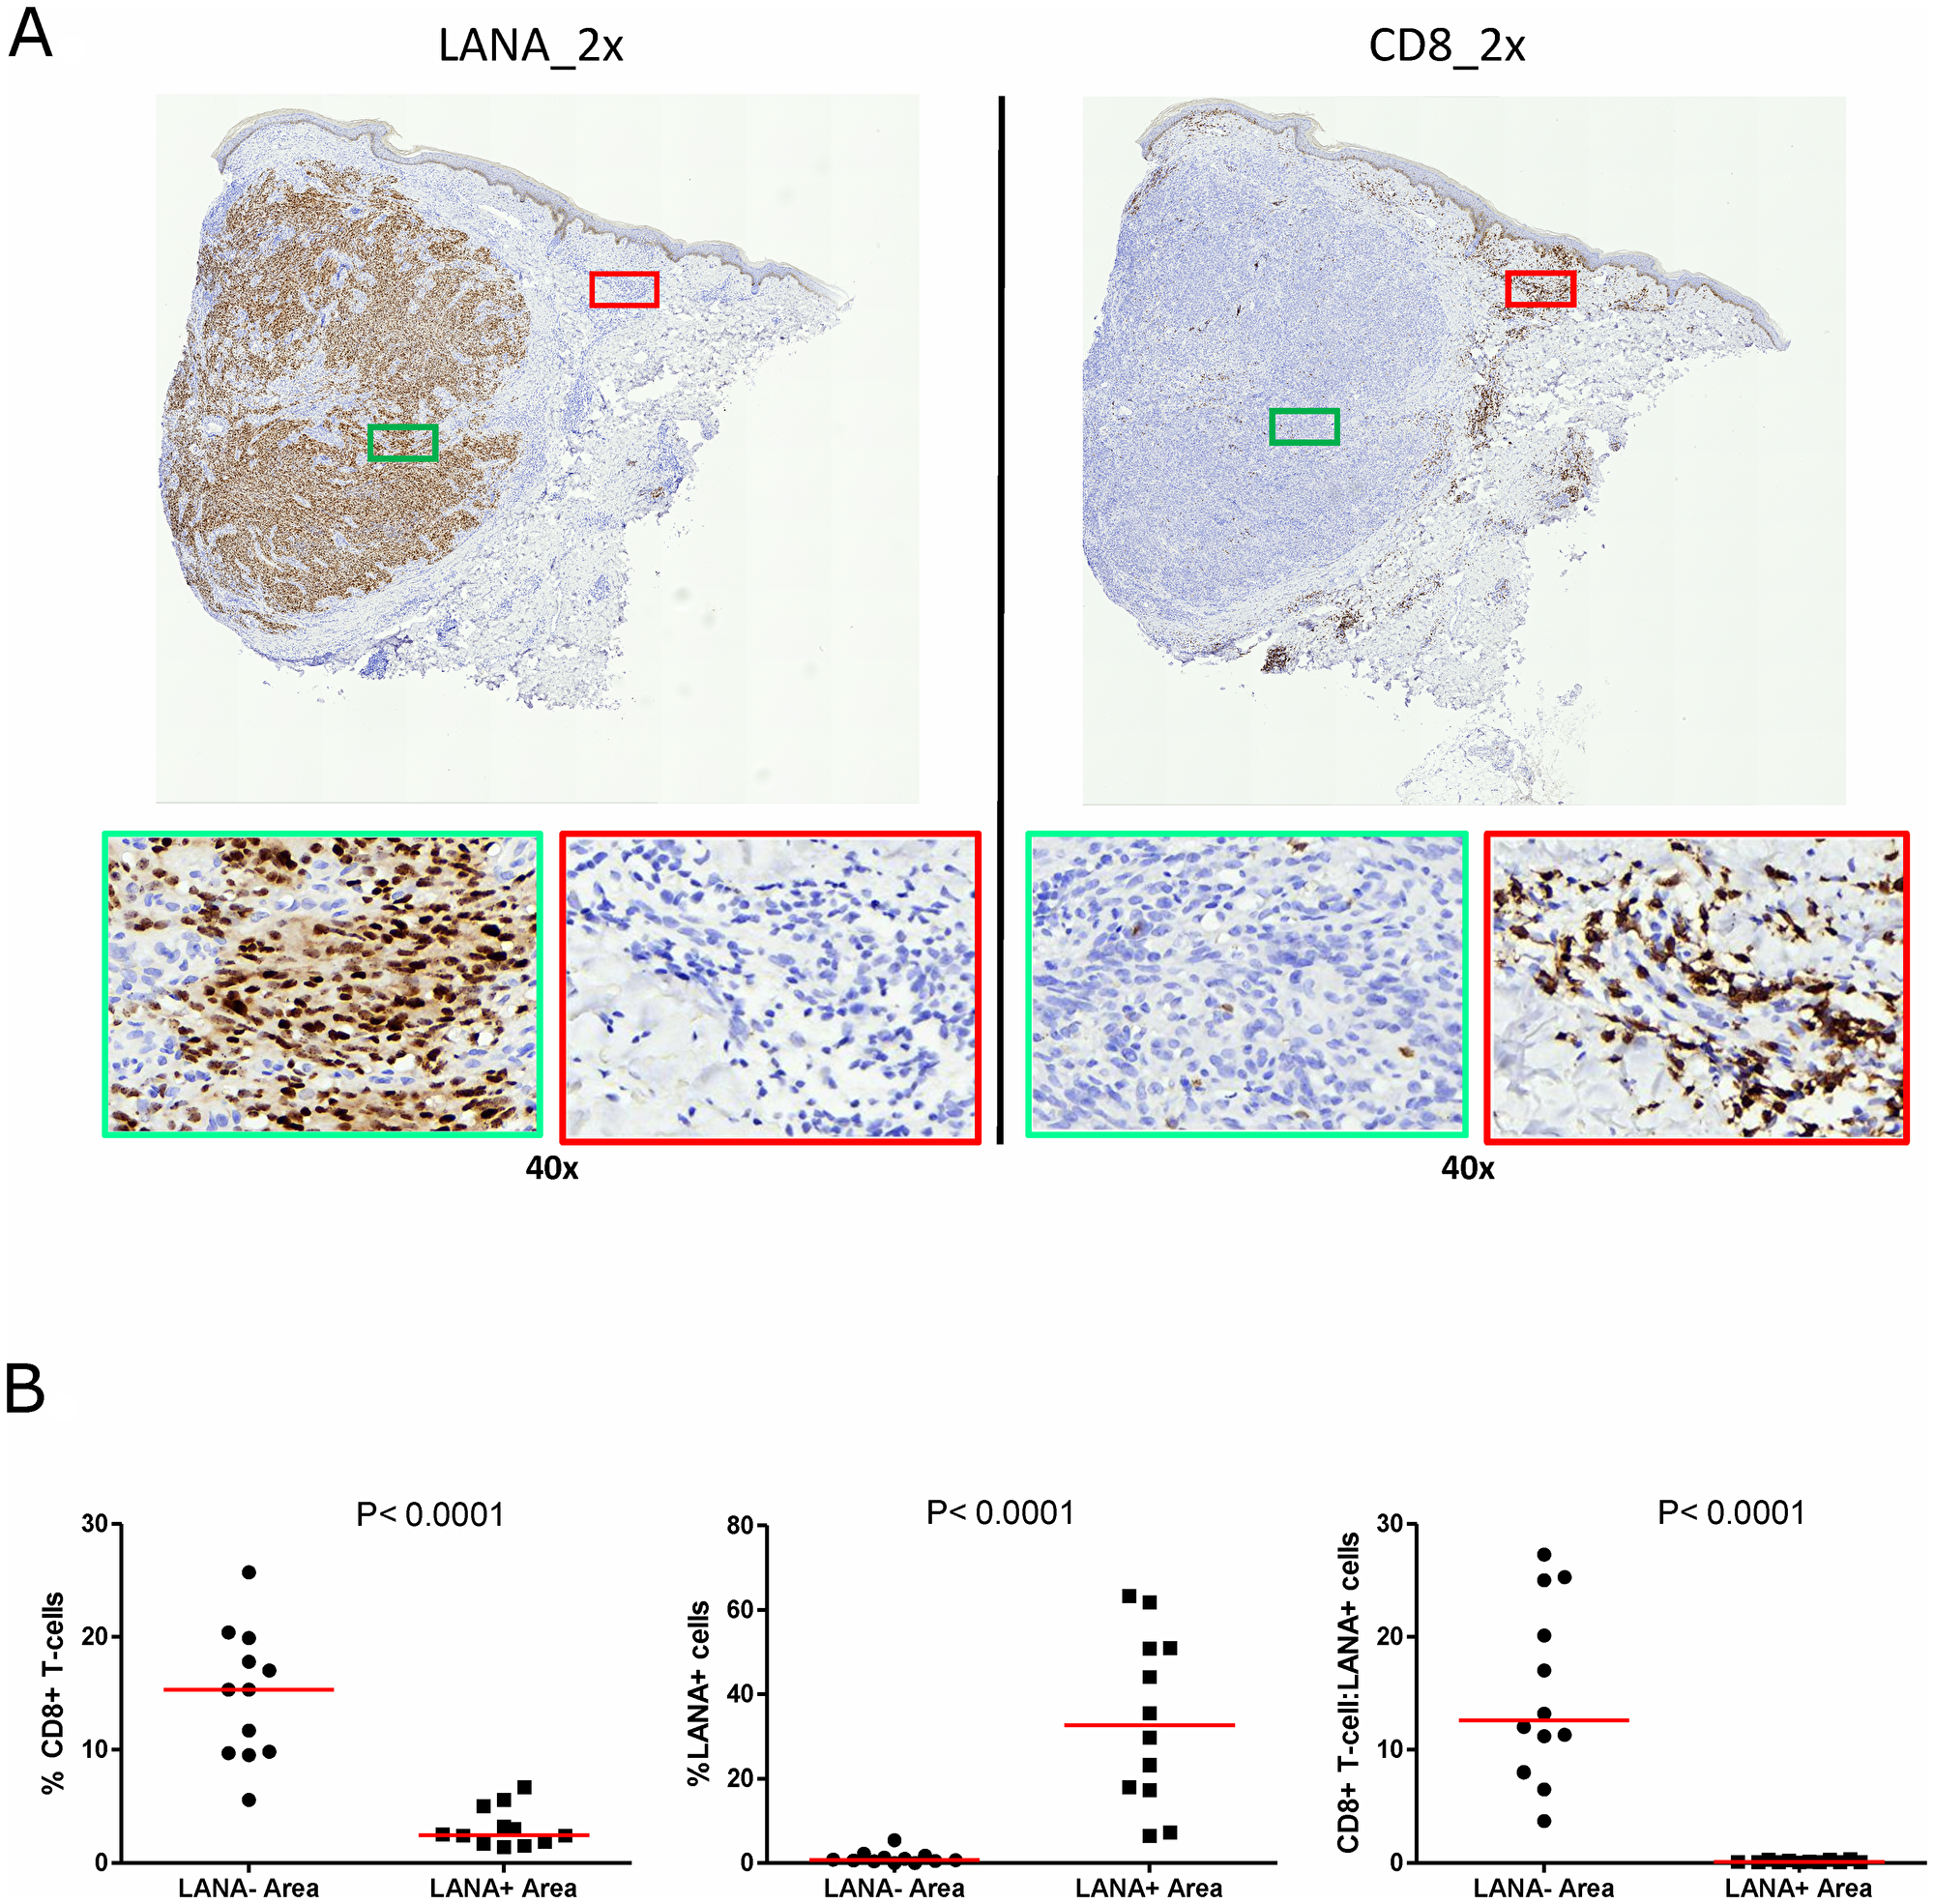 Single-color immunohistochemical staining of adjacent KS tissue sections using mouse anti-LANA and mouse anti-humanCD8 antibodies.